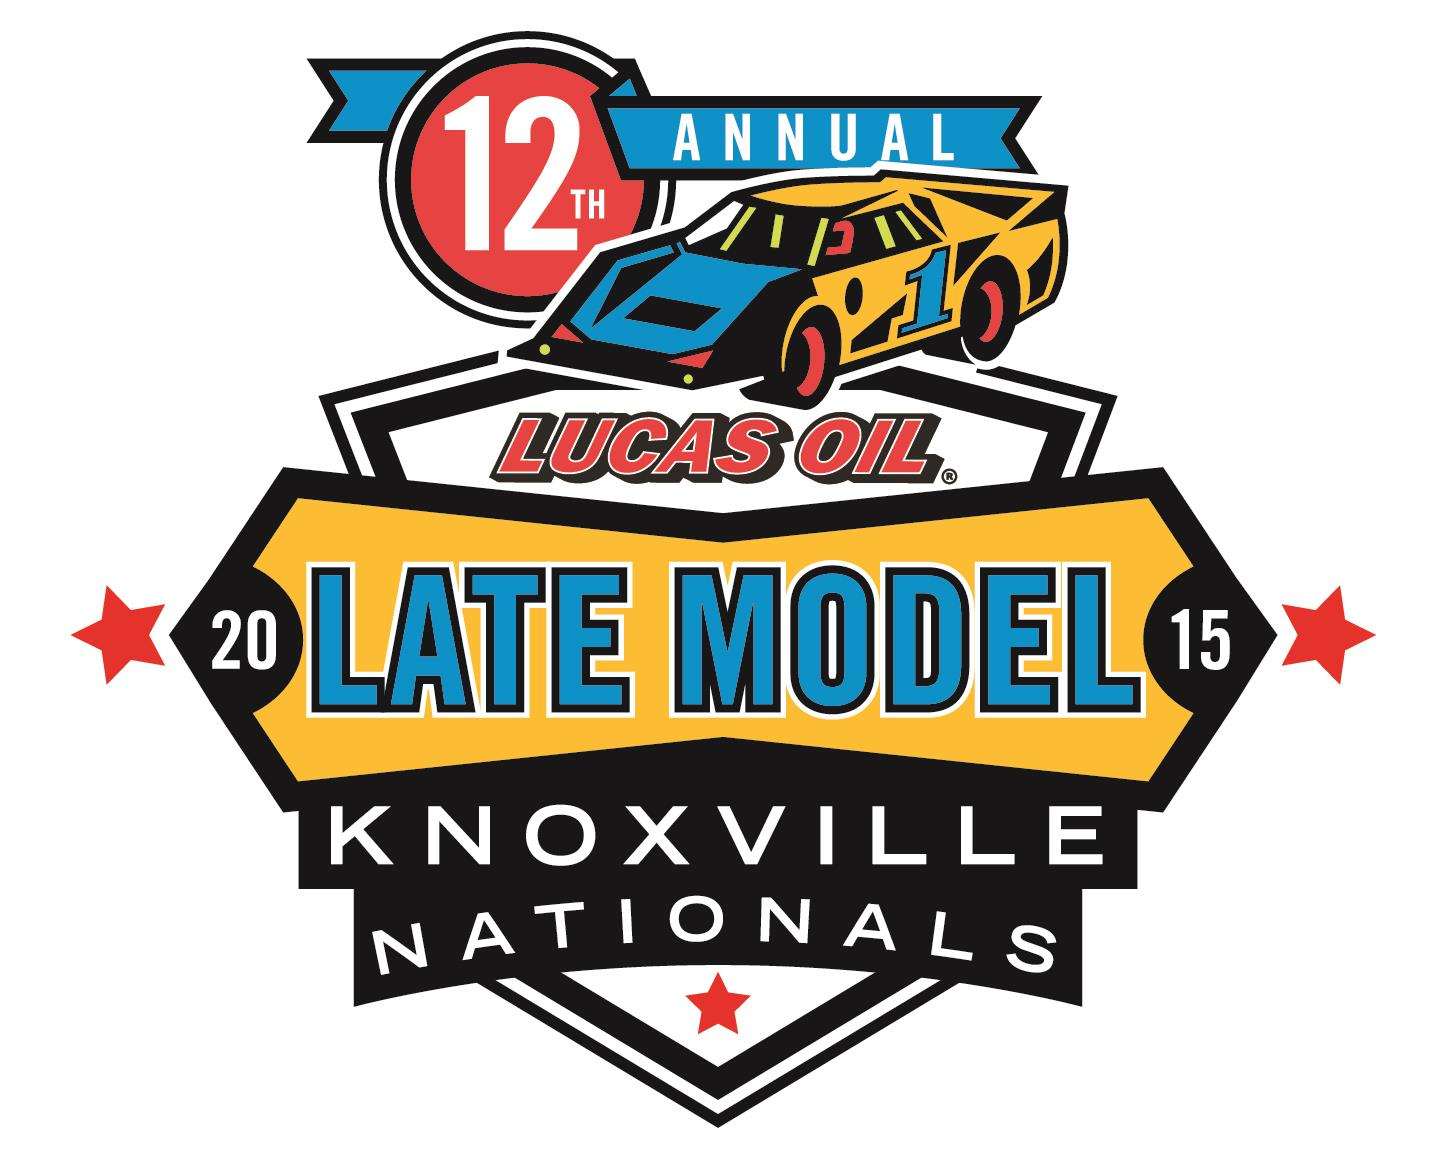 13th Annual Lucas Oil Late Model Nationals